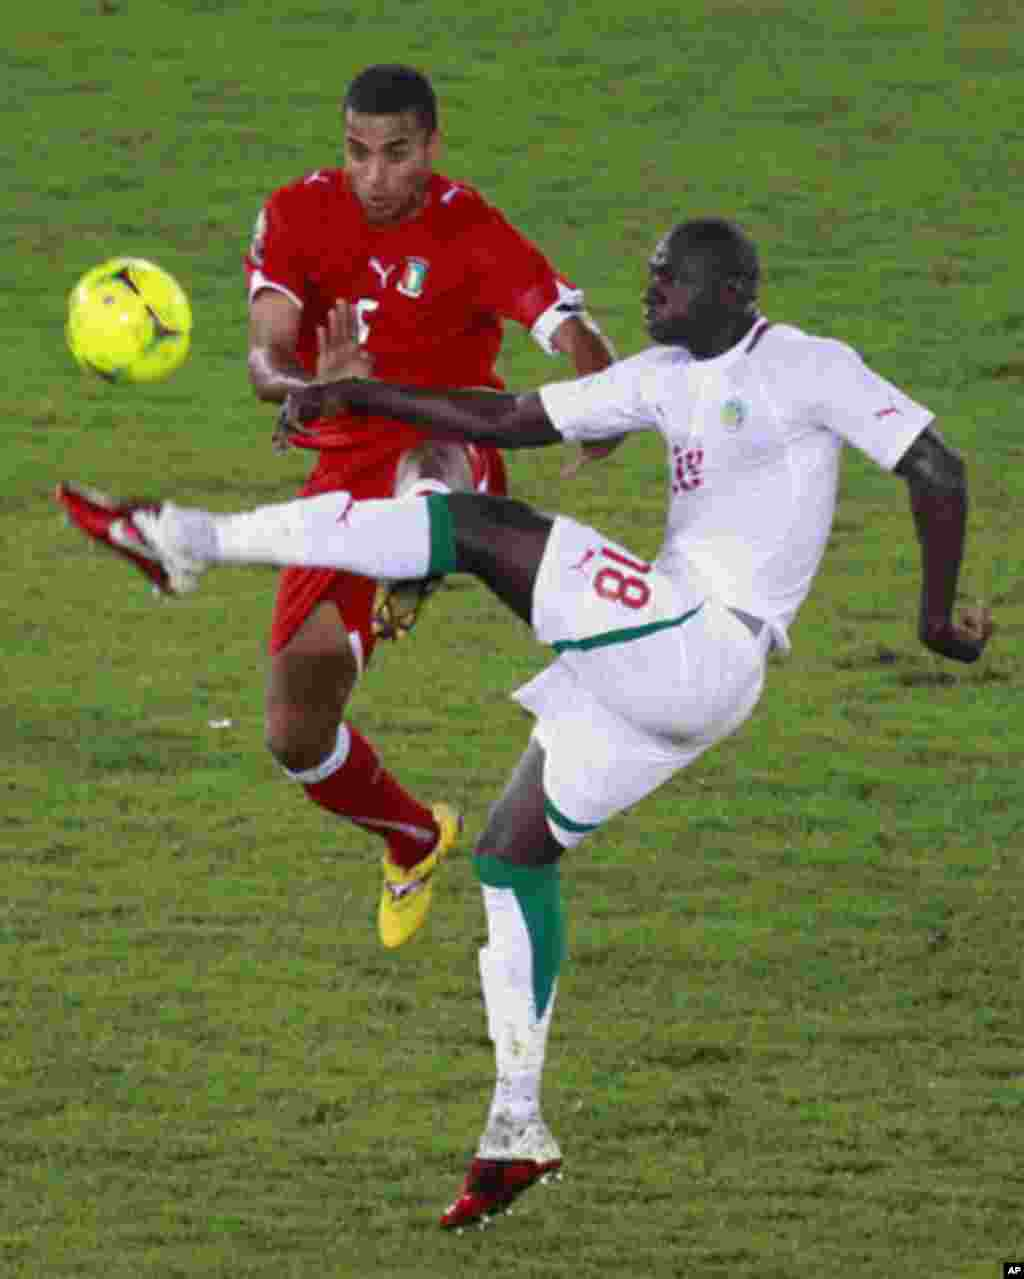 Edjogo of Equatorial Guinea challenges N'Daw of Senegal during their African Nations Cup Group A soccer match at Estadio de Bata